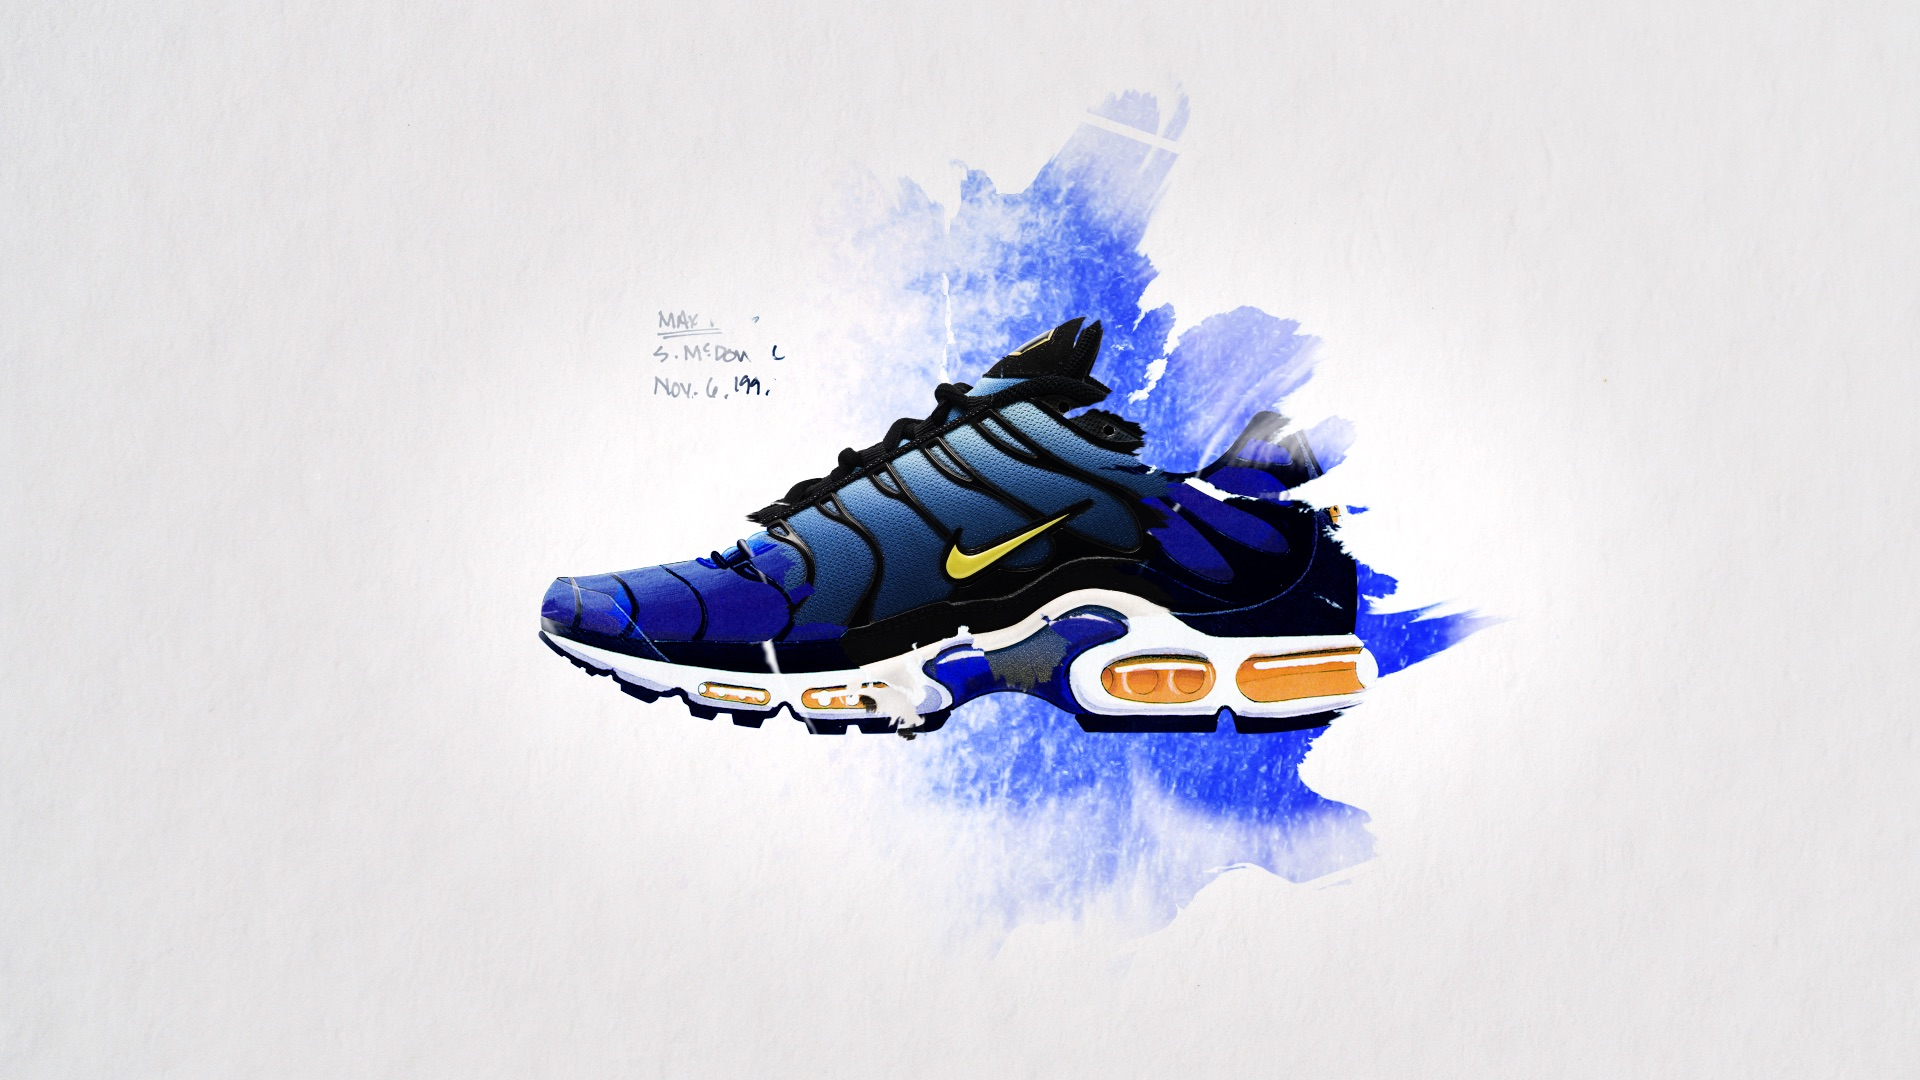 half off 153de a99d4 ... Nike Tn Air. The organic motion design is a translation to, firstly,  the blending colours of the shoe s aesthetic - inspired by gradients found  in ...